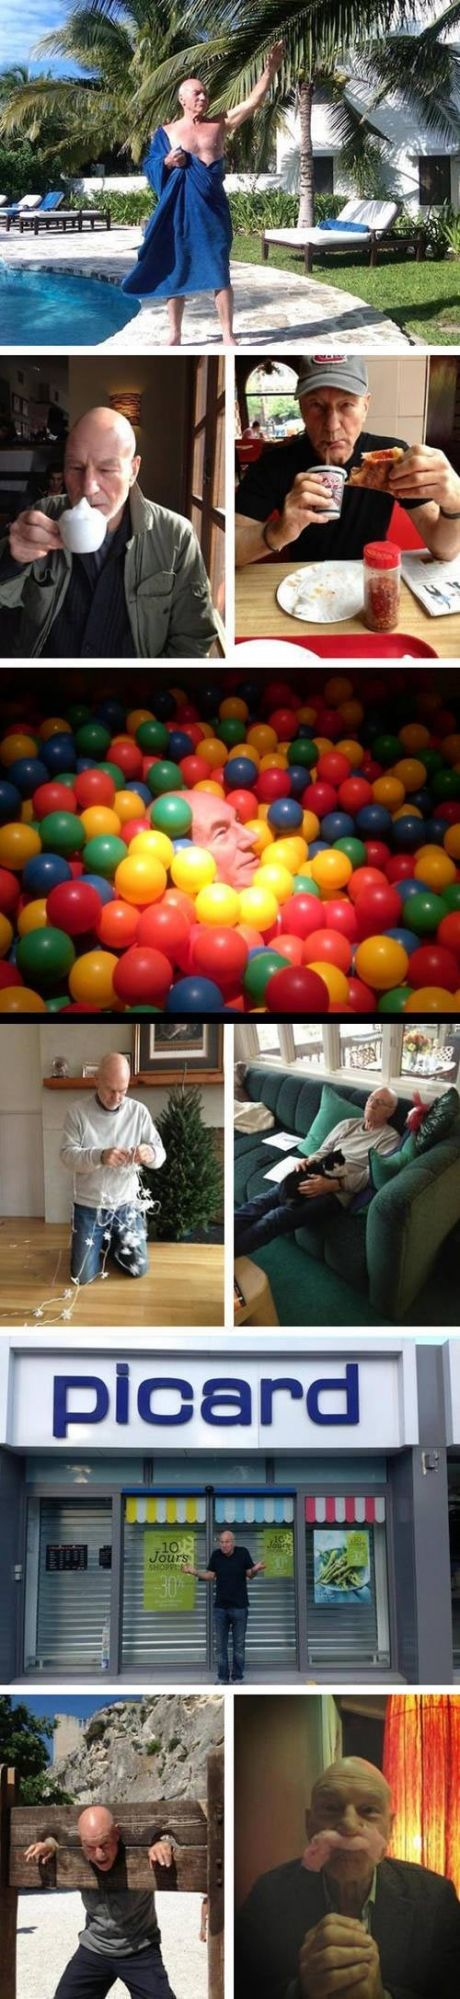 When I'm feeling a little blue, I can always pull up these pictures of Patrick Stewart being adorable. :-)